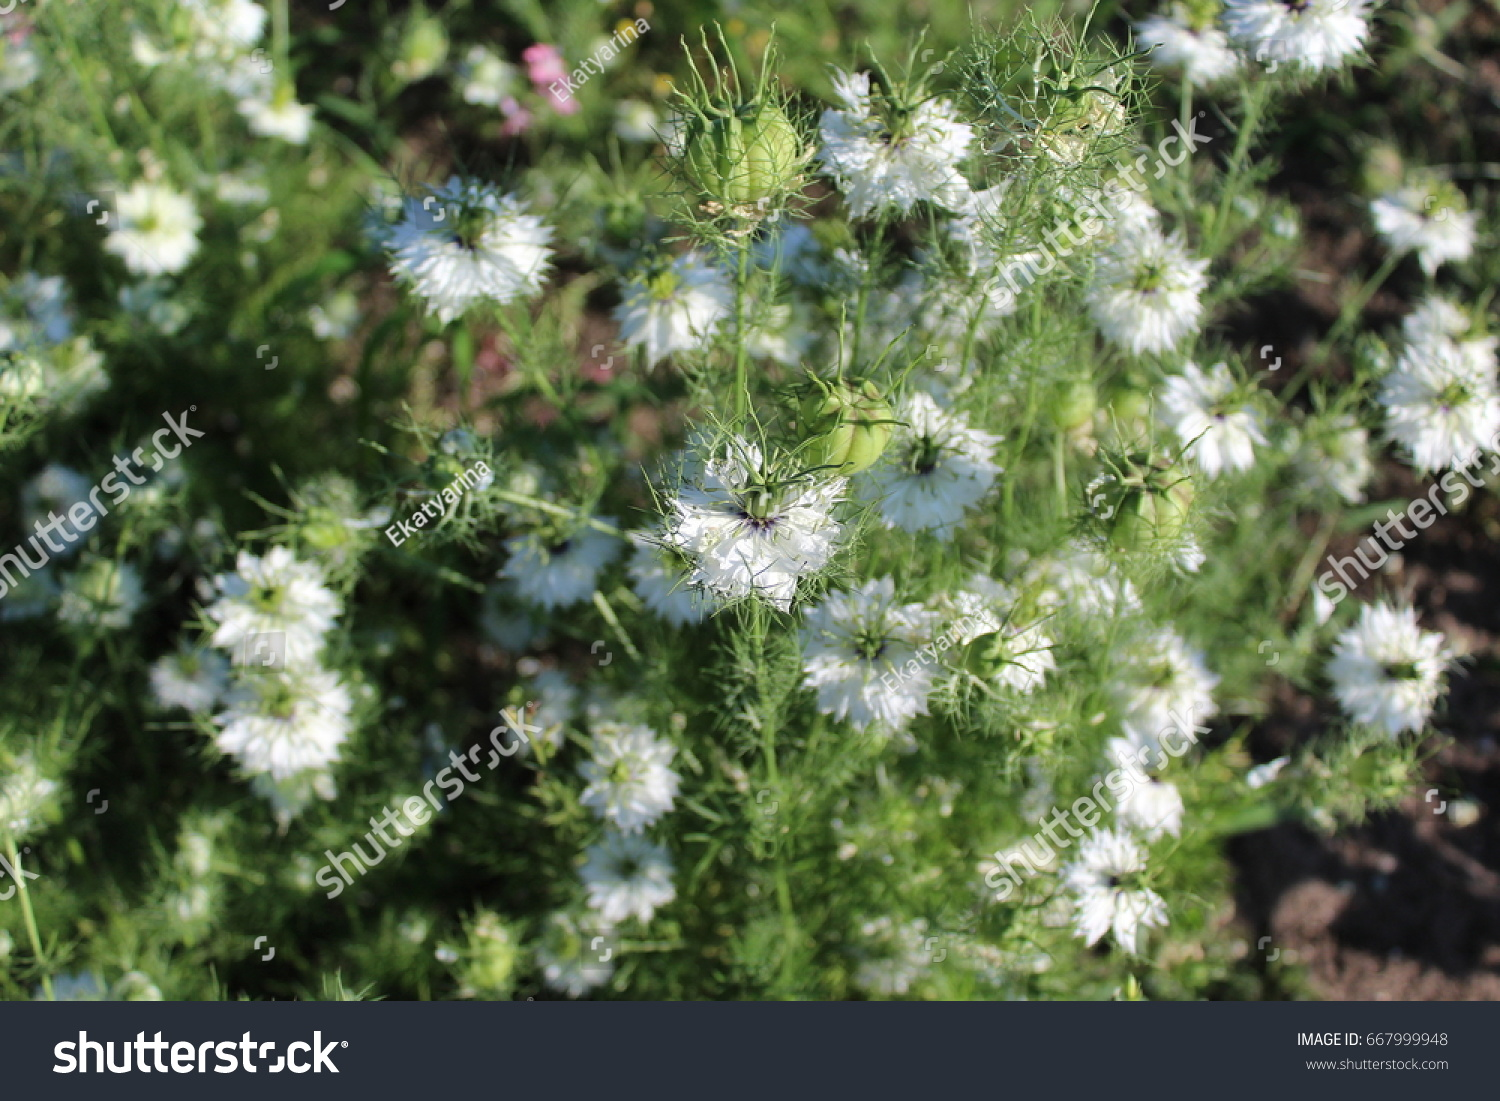 Small white flowers blossomed in the spring these are beautiful id 667999948 mightylinksfo